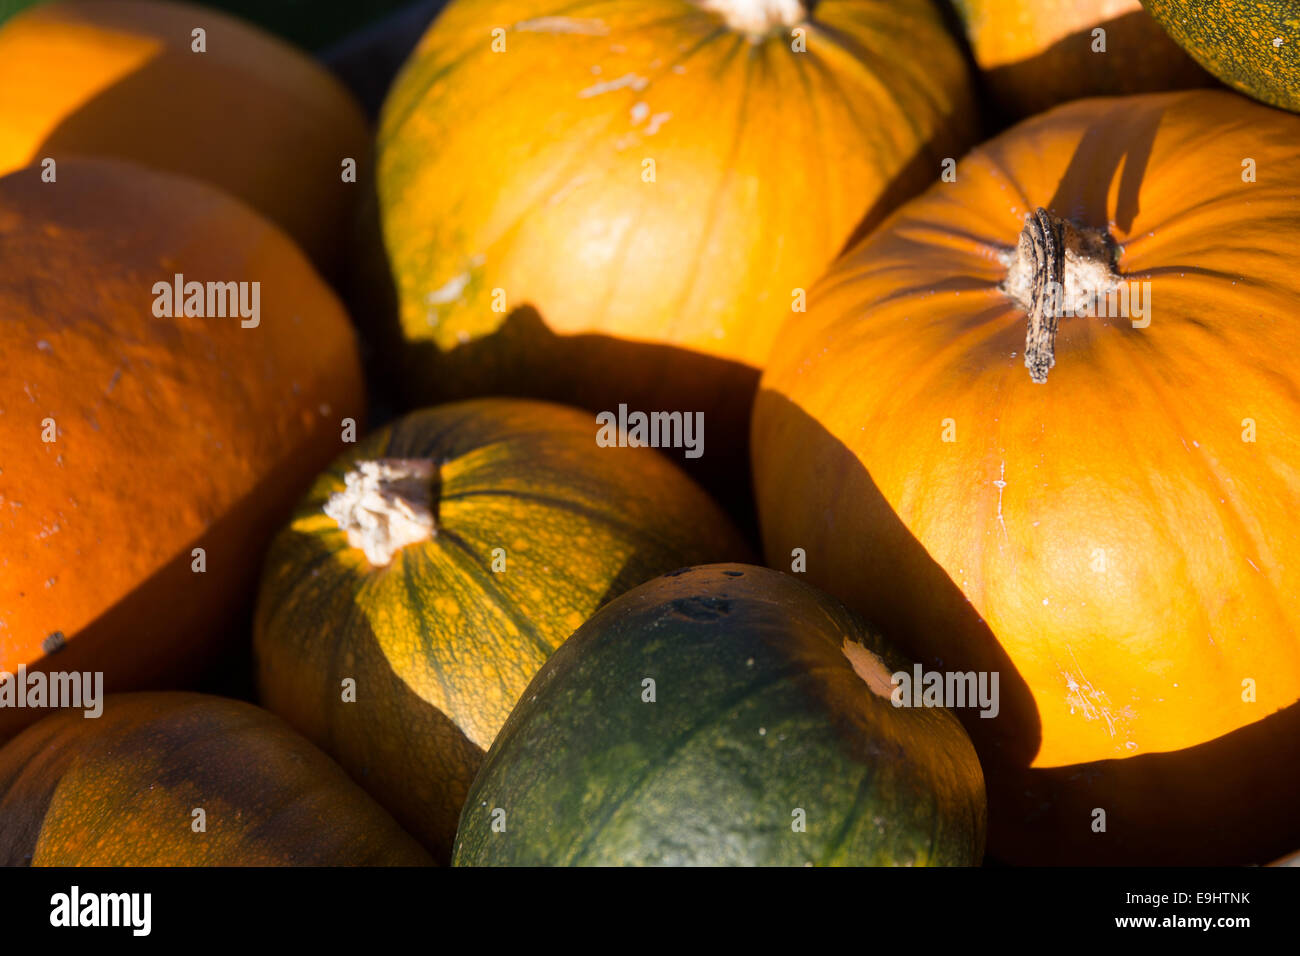 Newport Pagnell, Buckinghamshire, UK. 28th October, 2014.  Mr John Sharrn shows his own grown pumpkins in time for Stock Photo